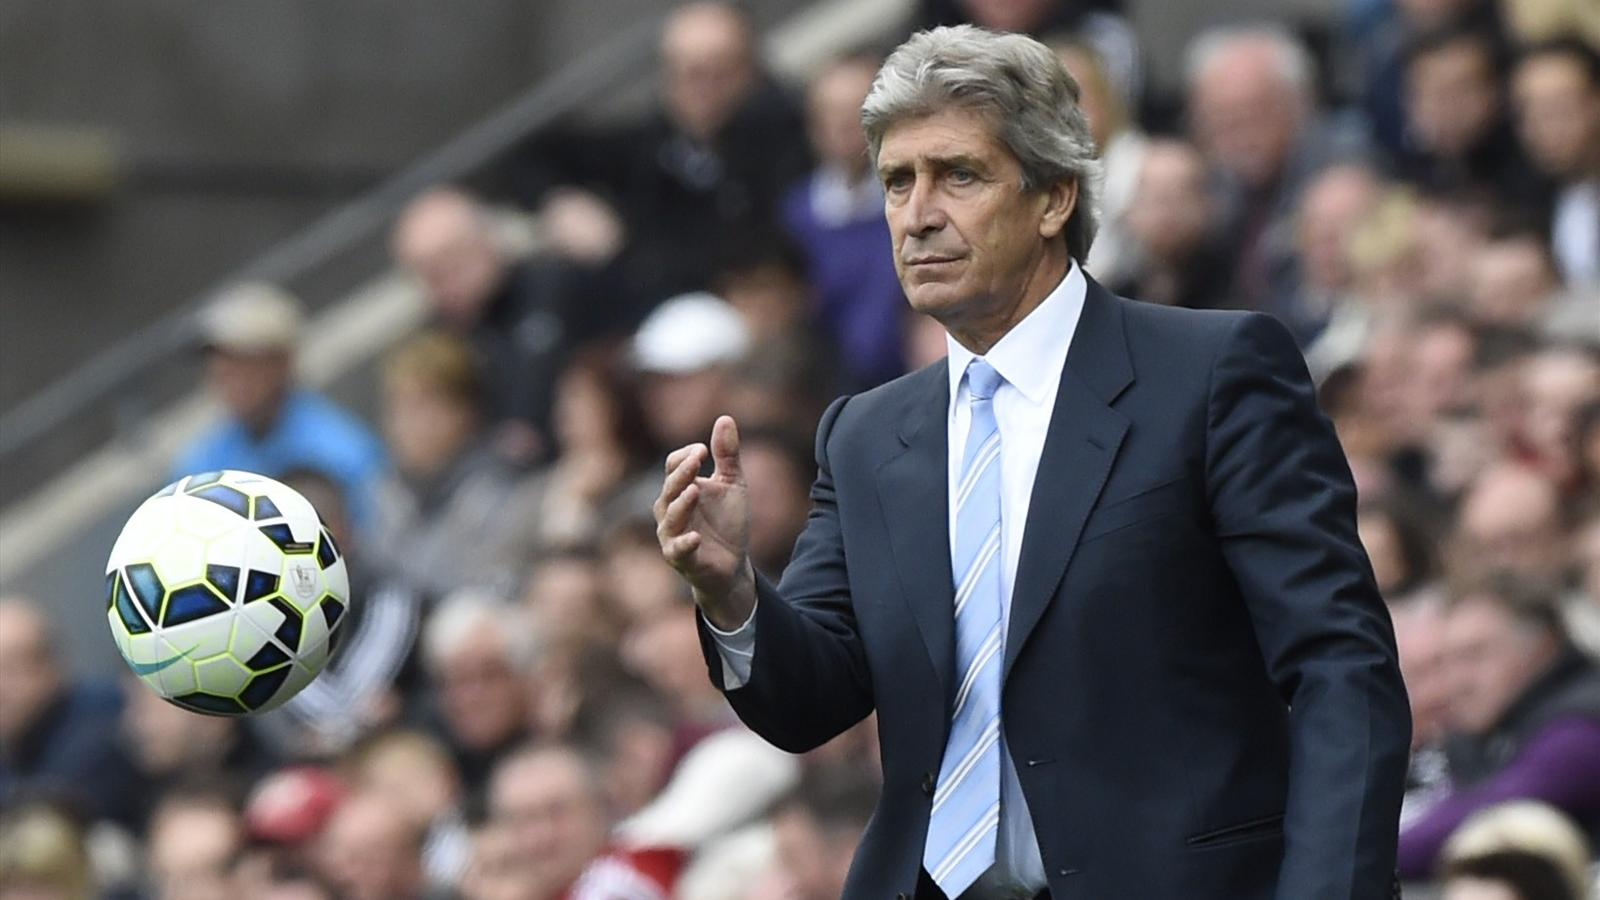 Manchester City manager Manuel Pellegrini throws the ball back into play